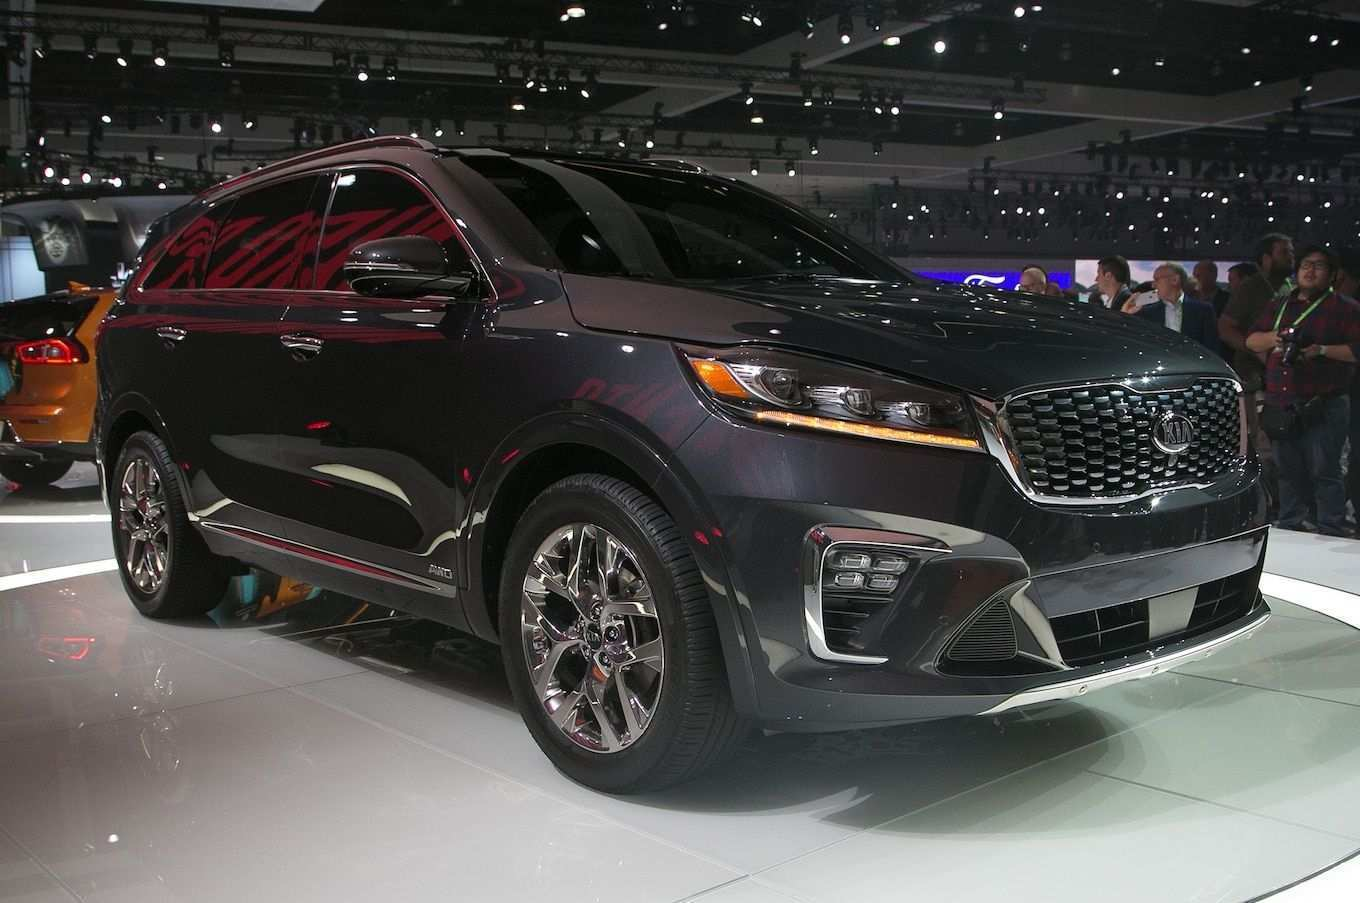 99 All New Kia Sorento 2019 Video Release Date